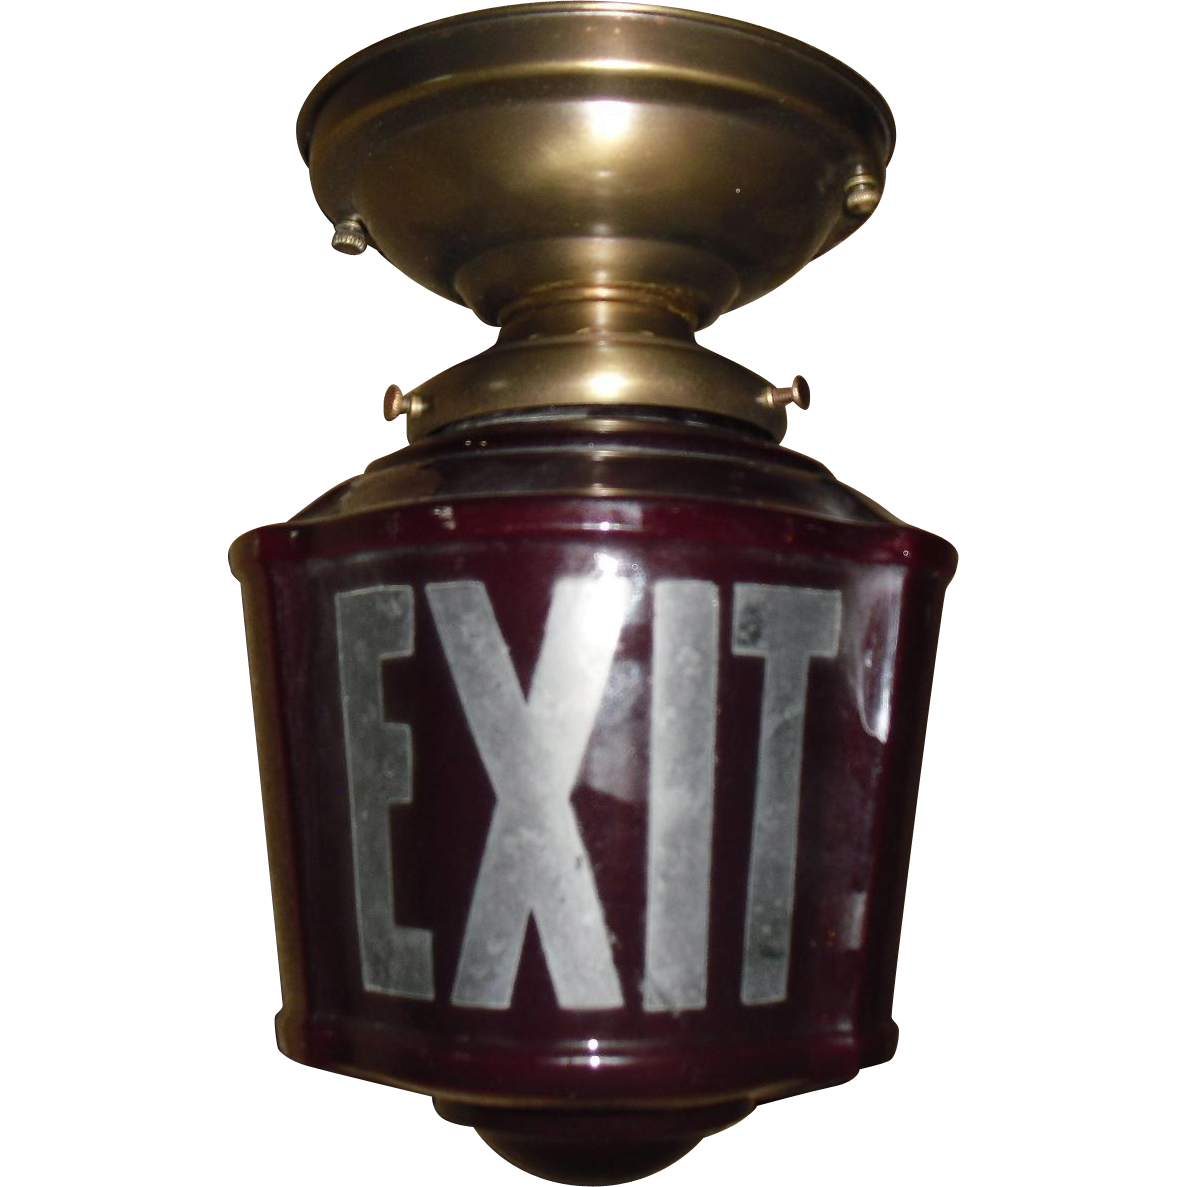 Ruby Red 3 Sided Exit Ceiling Light In Brass Fixture From